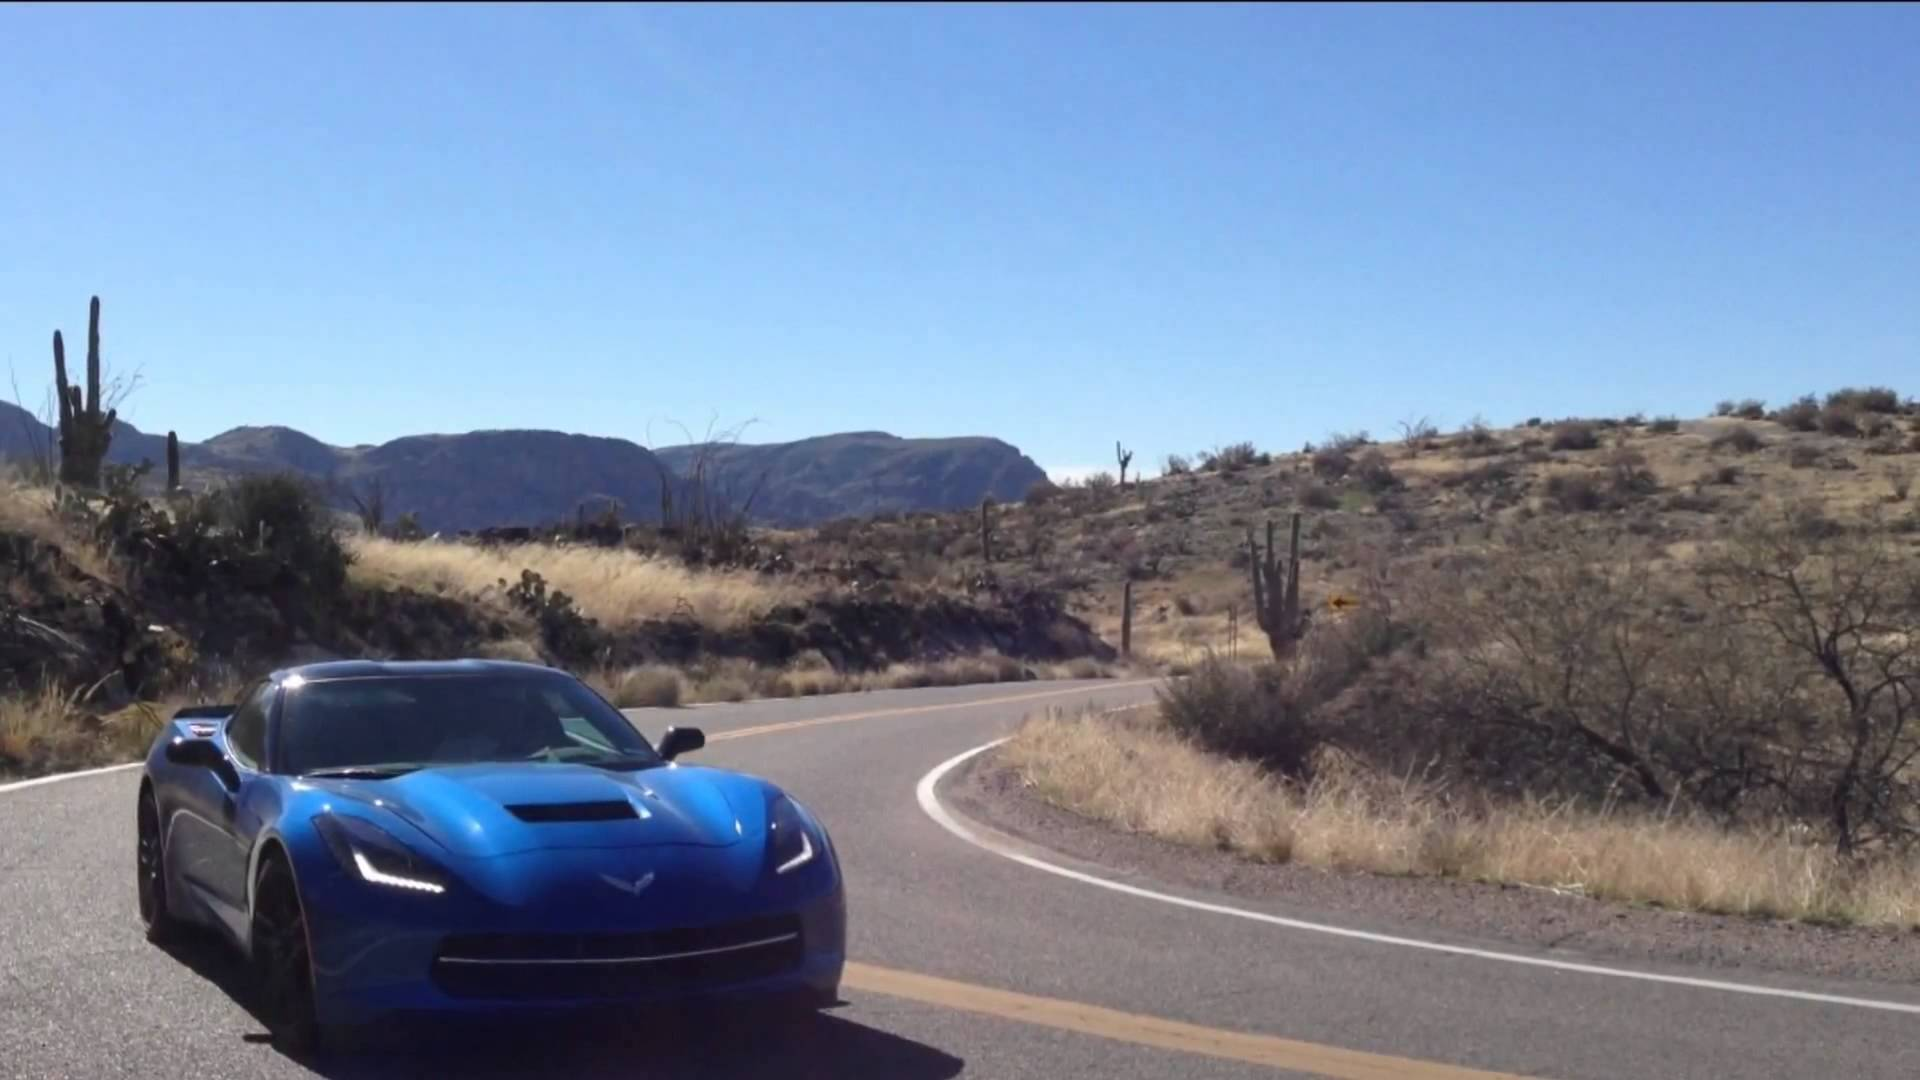 'Trailer'…2014 Corvette Stingray